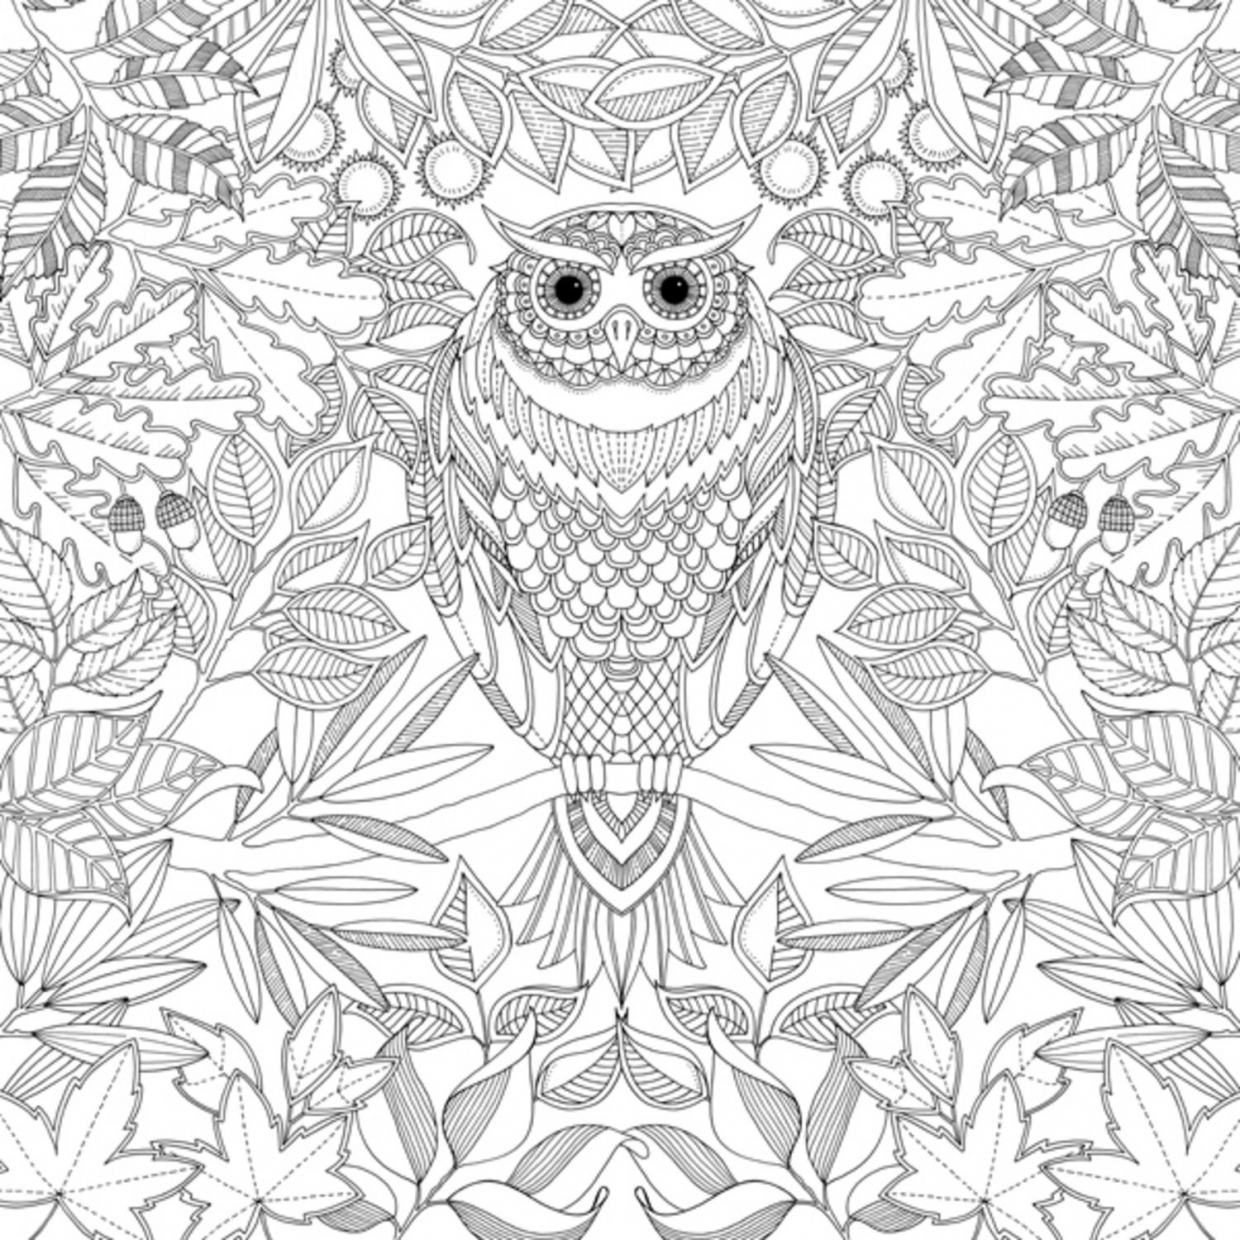 Printable Complex Coloring Pages Awesome Get This Free Complex Coloring Pages Printable Abxu2 Inspiration